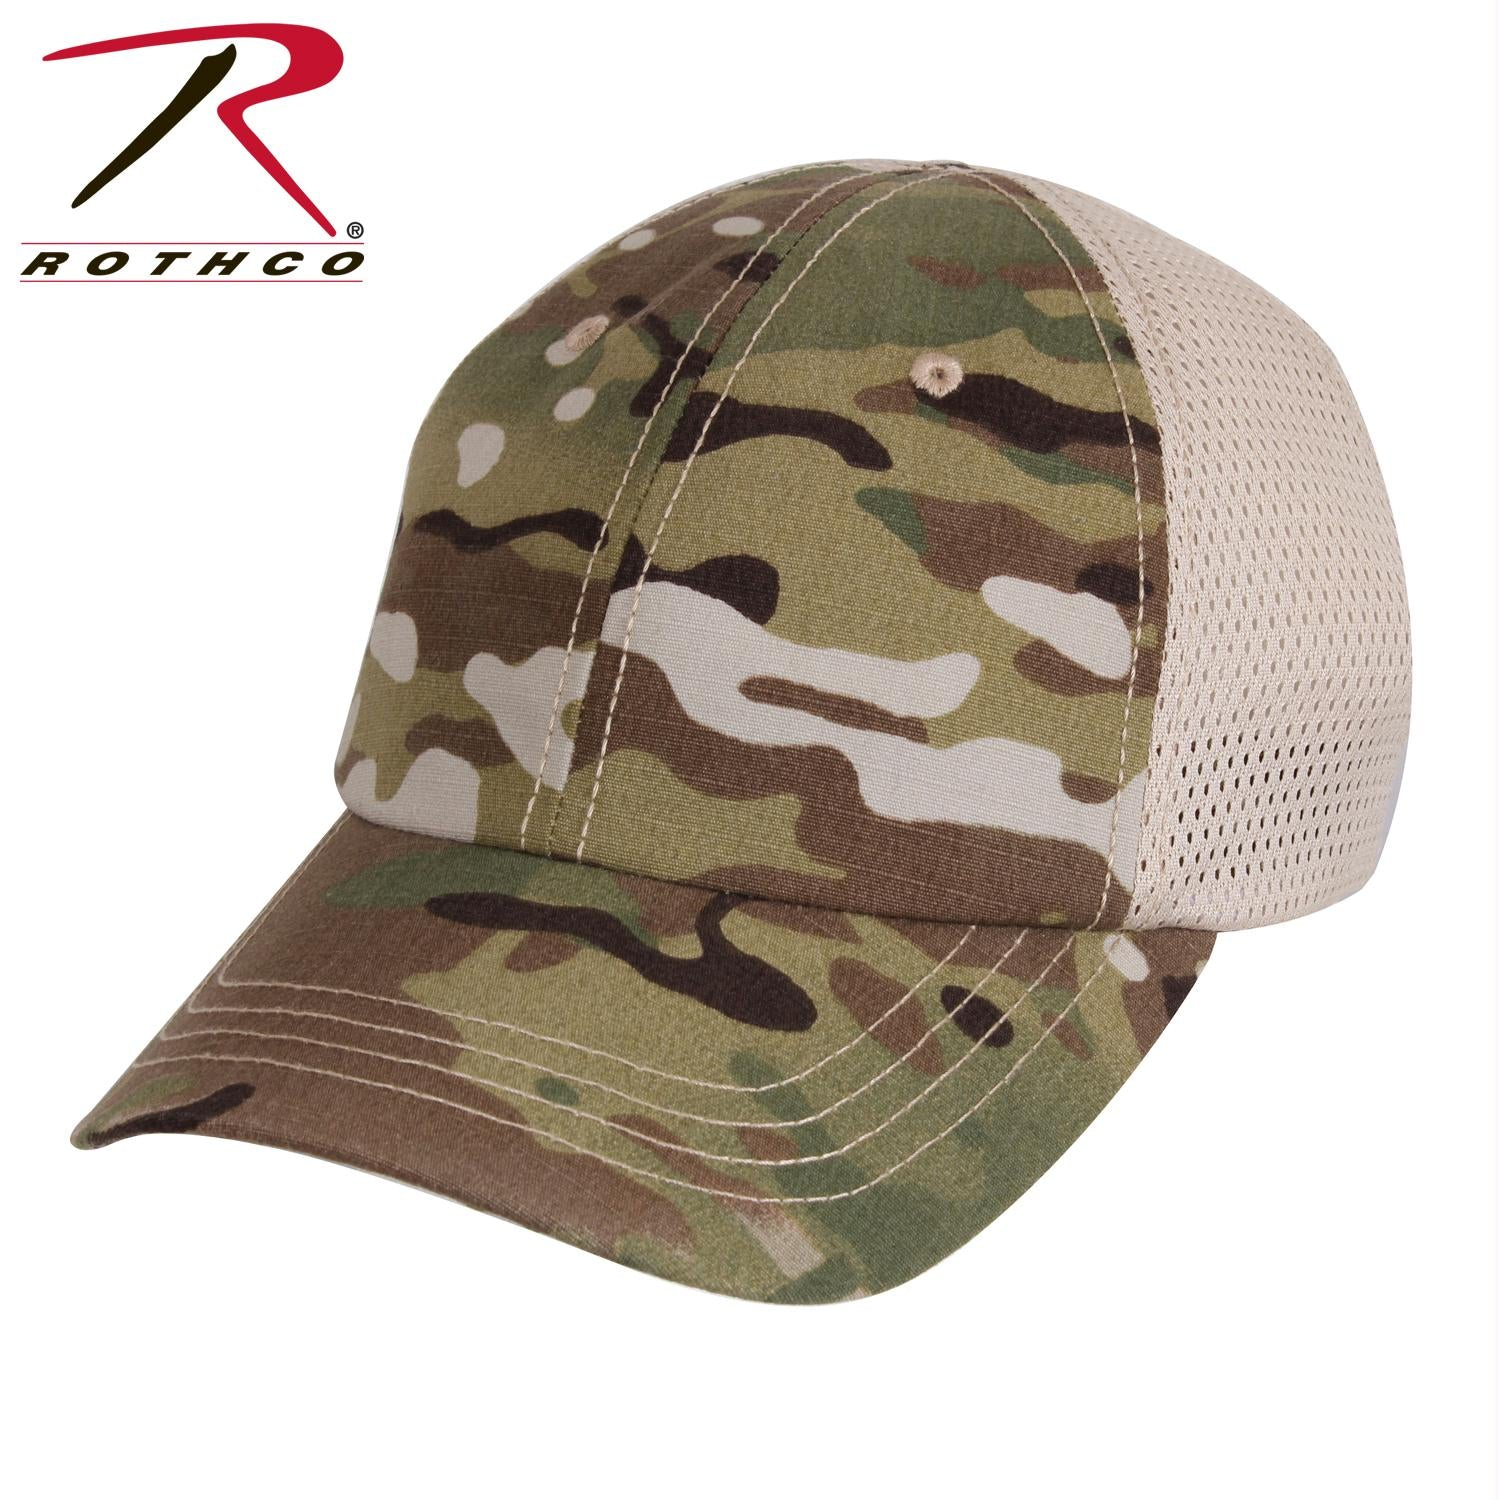 Rothco Mesh Back Tactical Cap - MultiCam / One Size